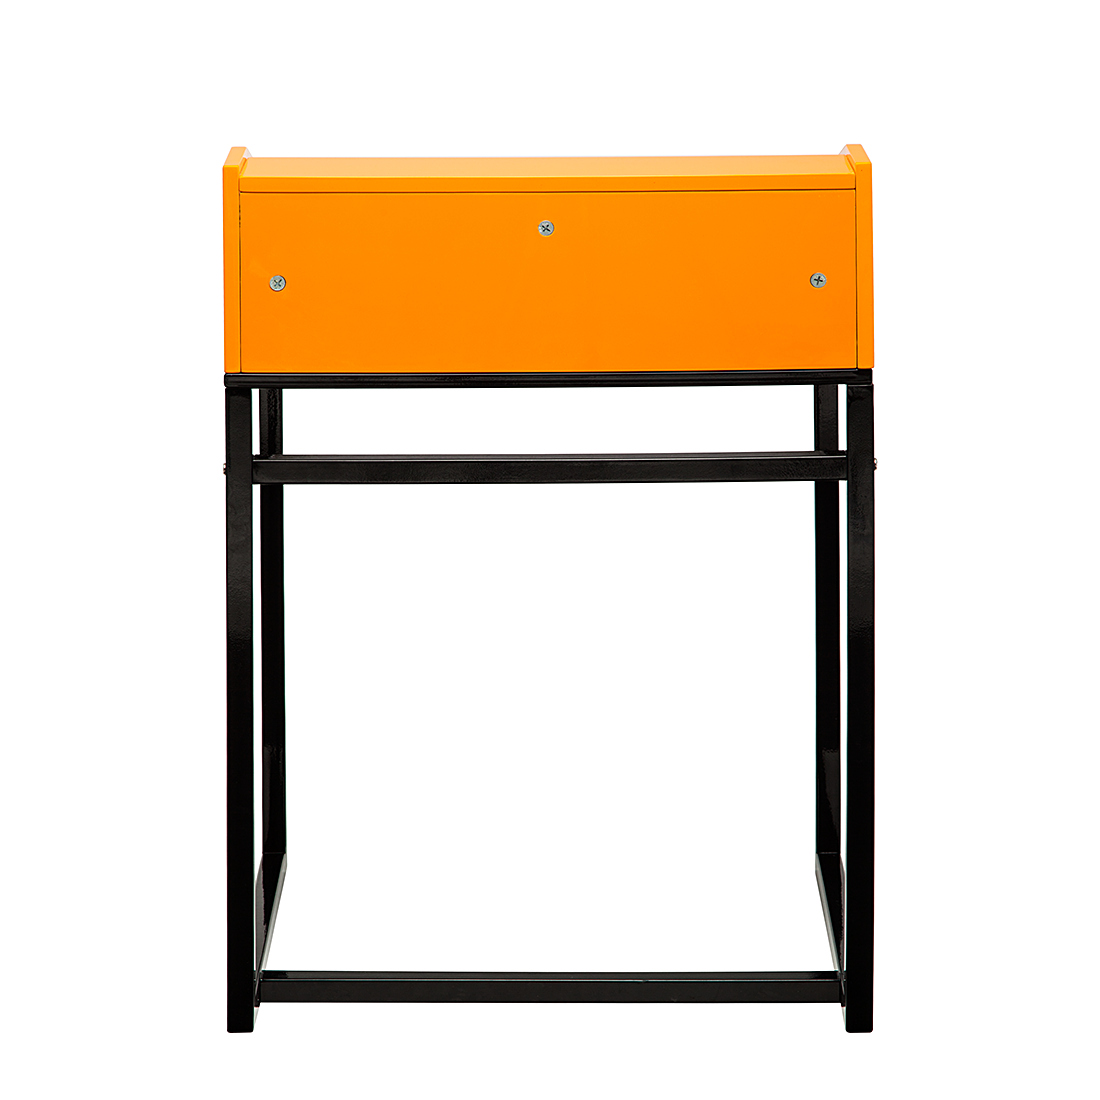 sekret r orange hochglanz schwarz schreibtisch schminktisch kinder tisch neu ebay. Black Bedroom Furniture Sets. Home Design Ideas